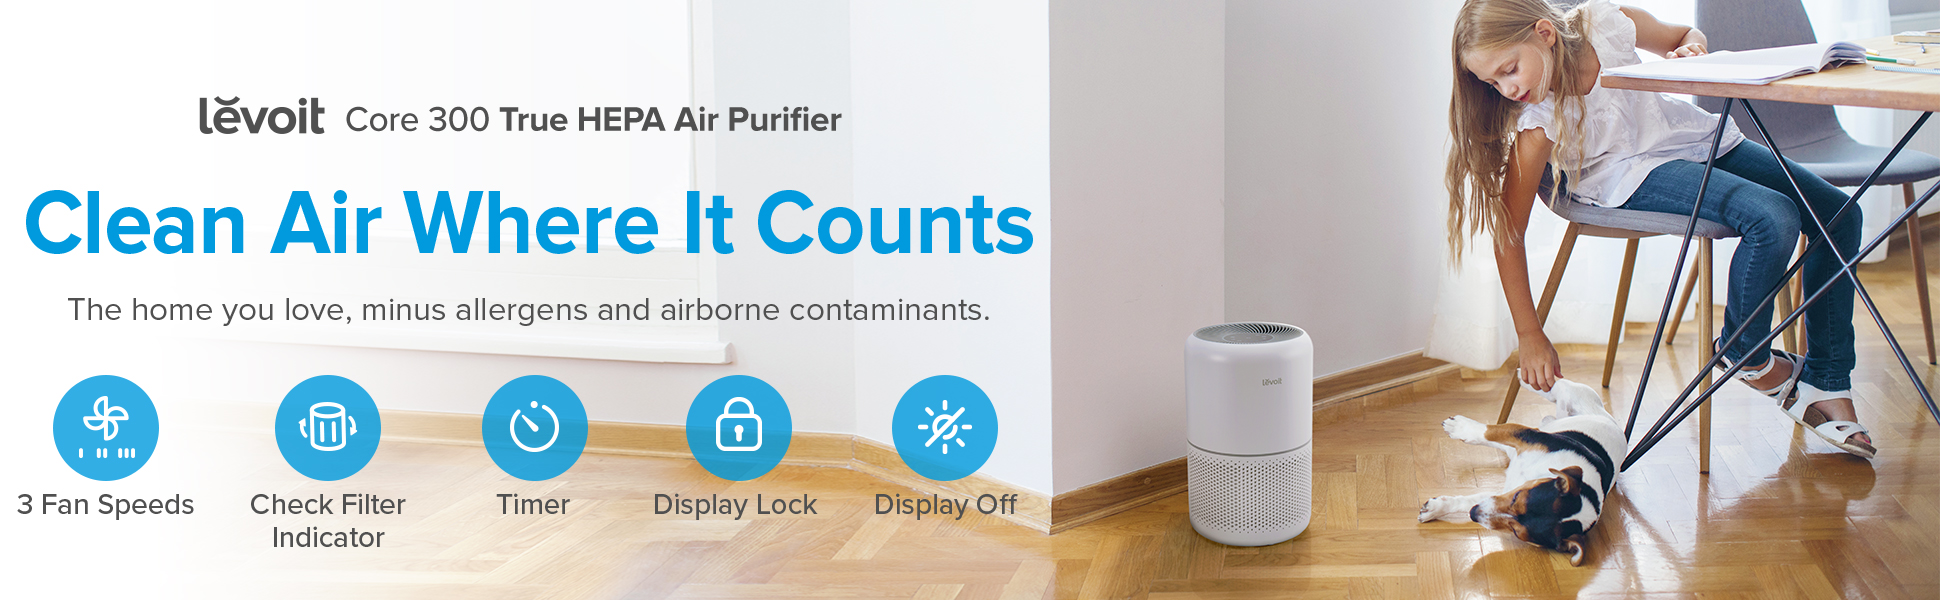 1.00_AP_HTHOHASA21DL_Core-300_True-HEPA-Air-Purifier_01.jpg